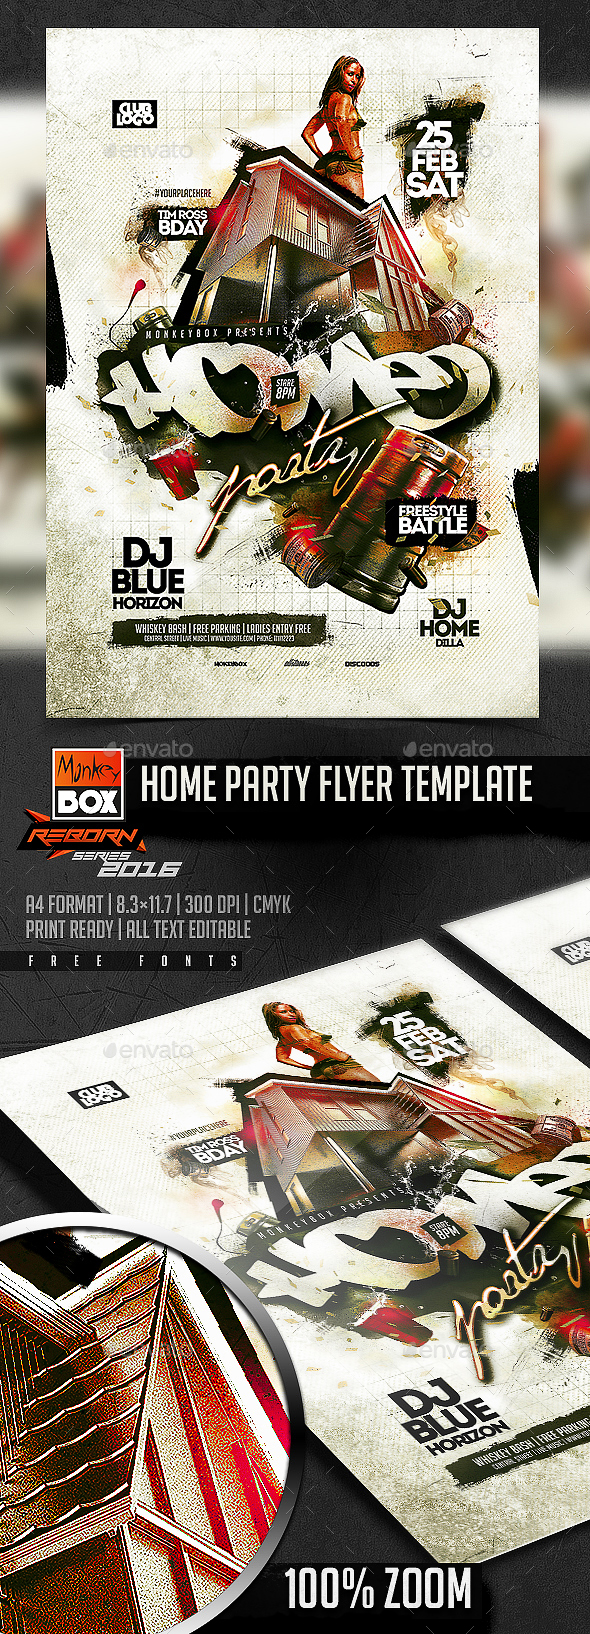 Home Party Flyer Template - Flyers Print Templates